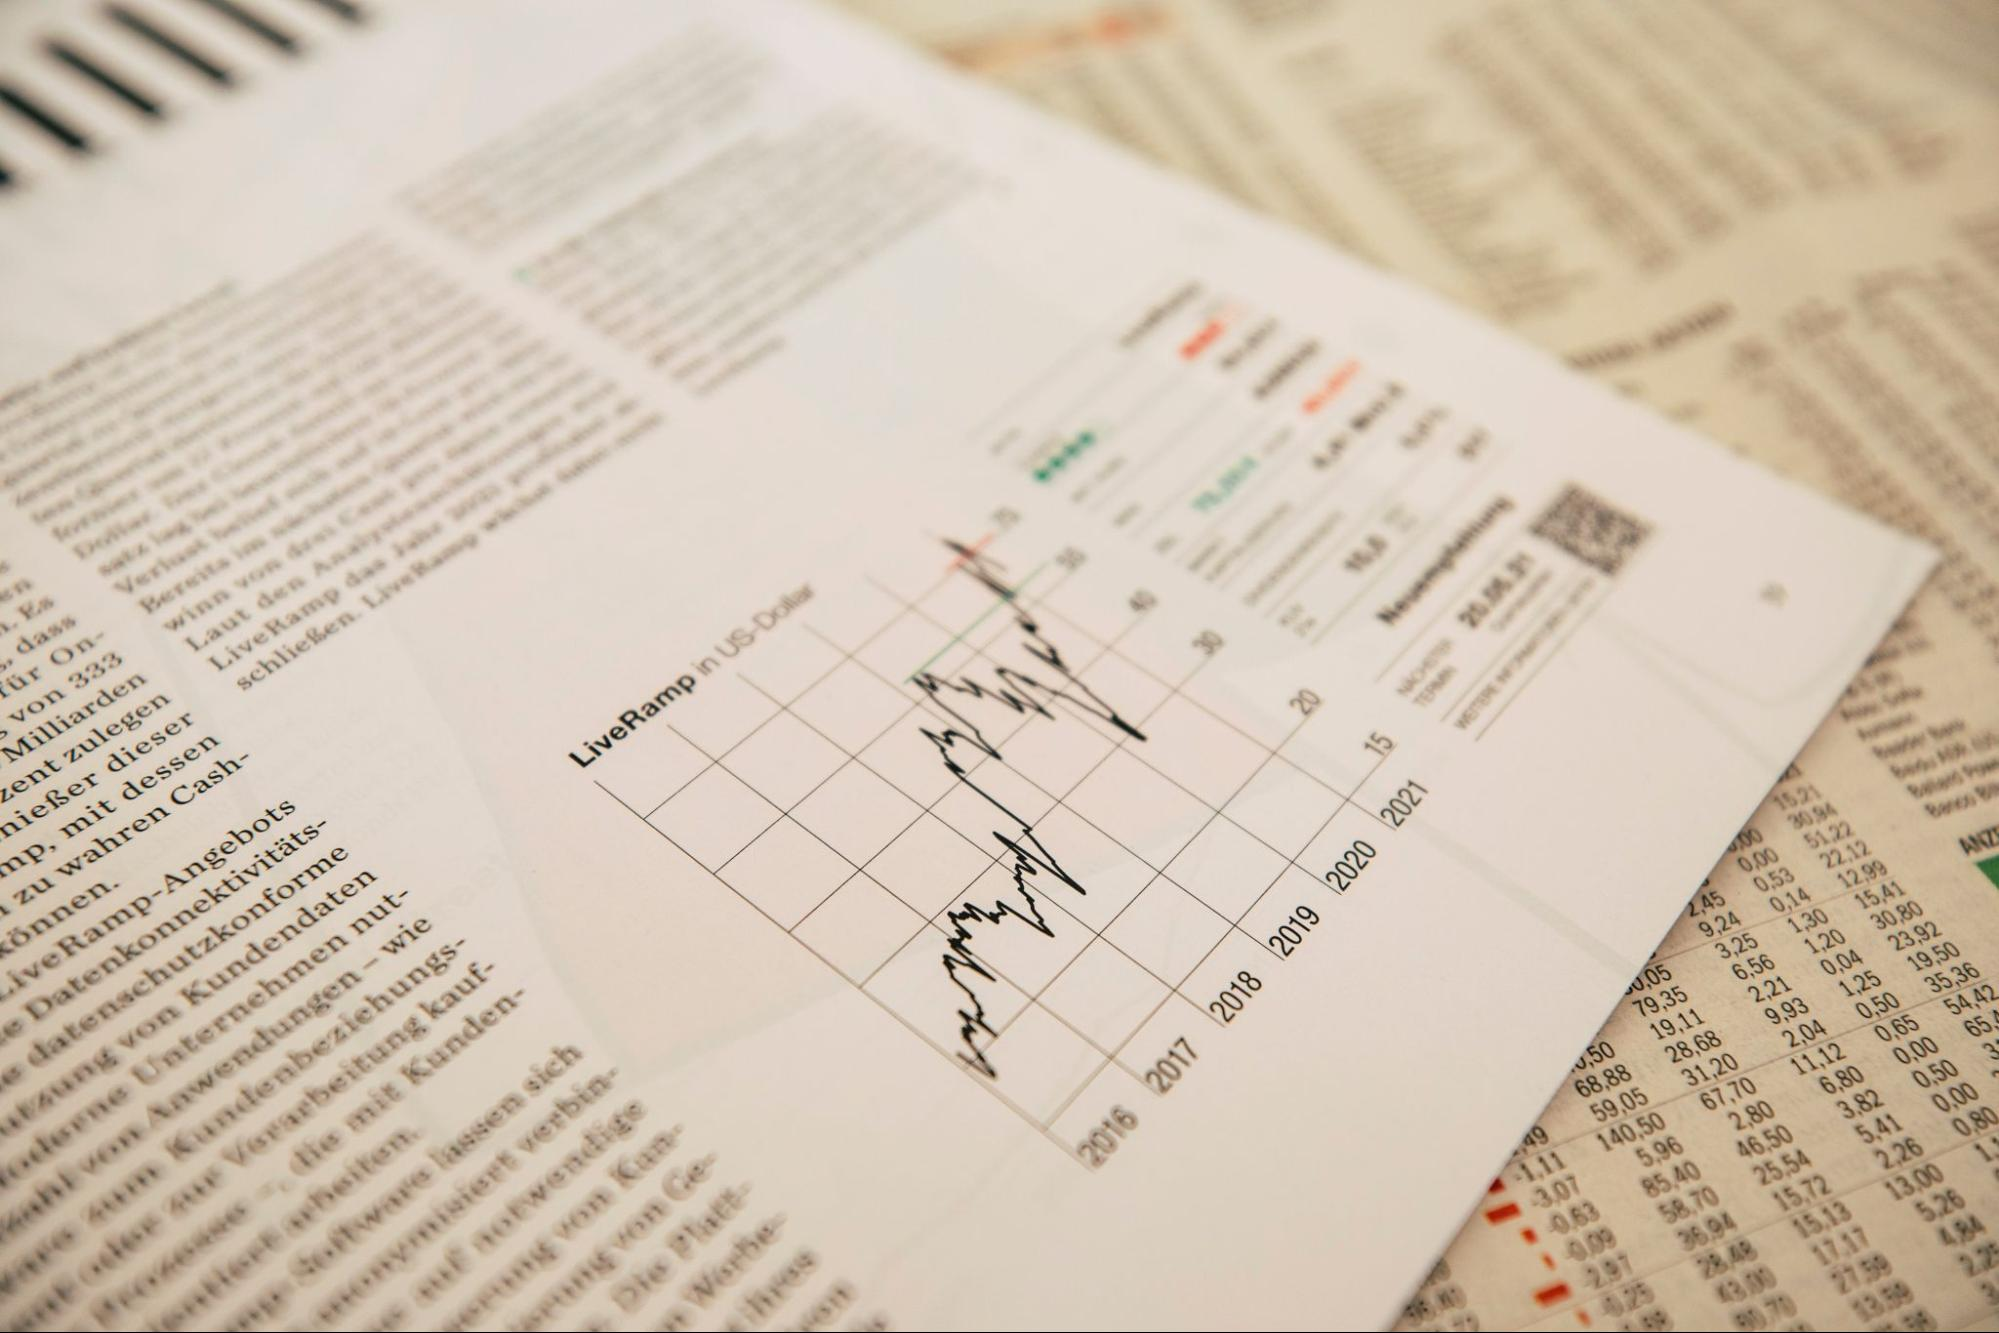 ESG investing does not necessarily improve performance